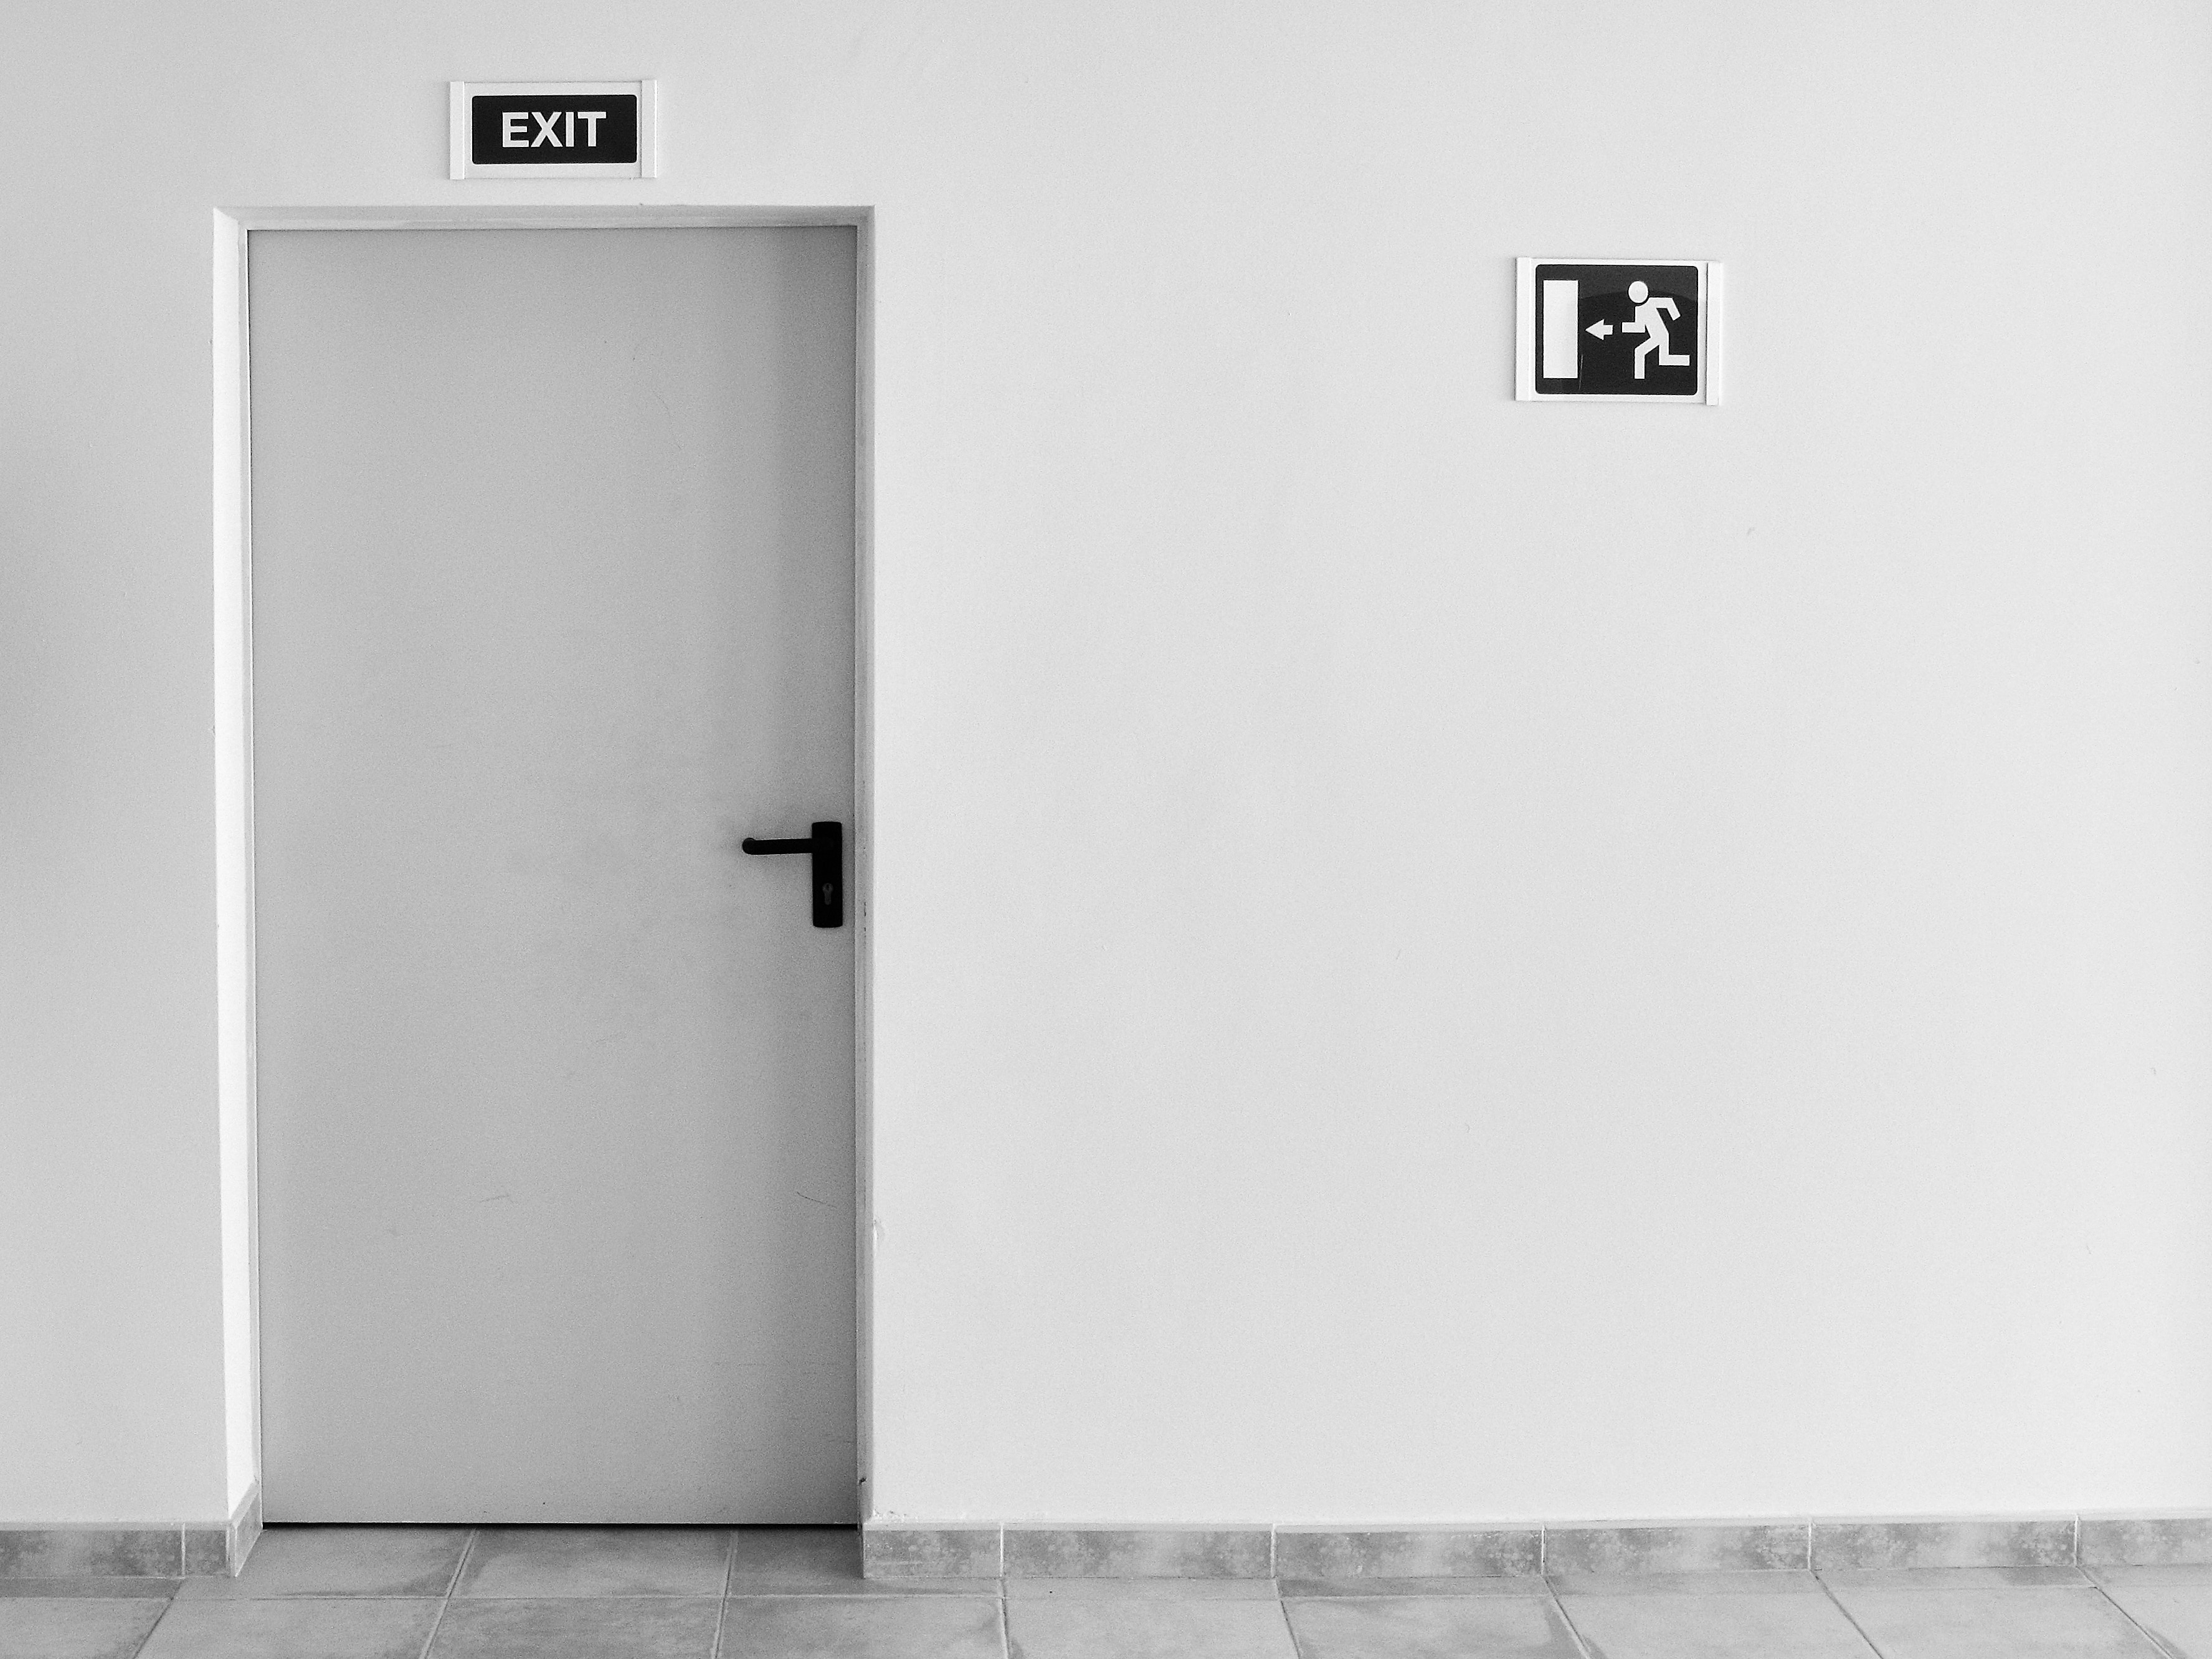 fire safety exit